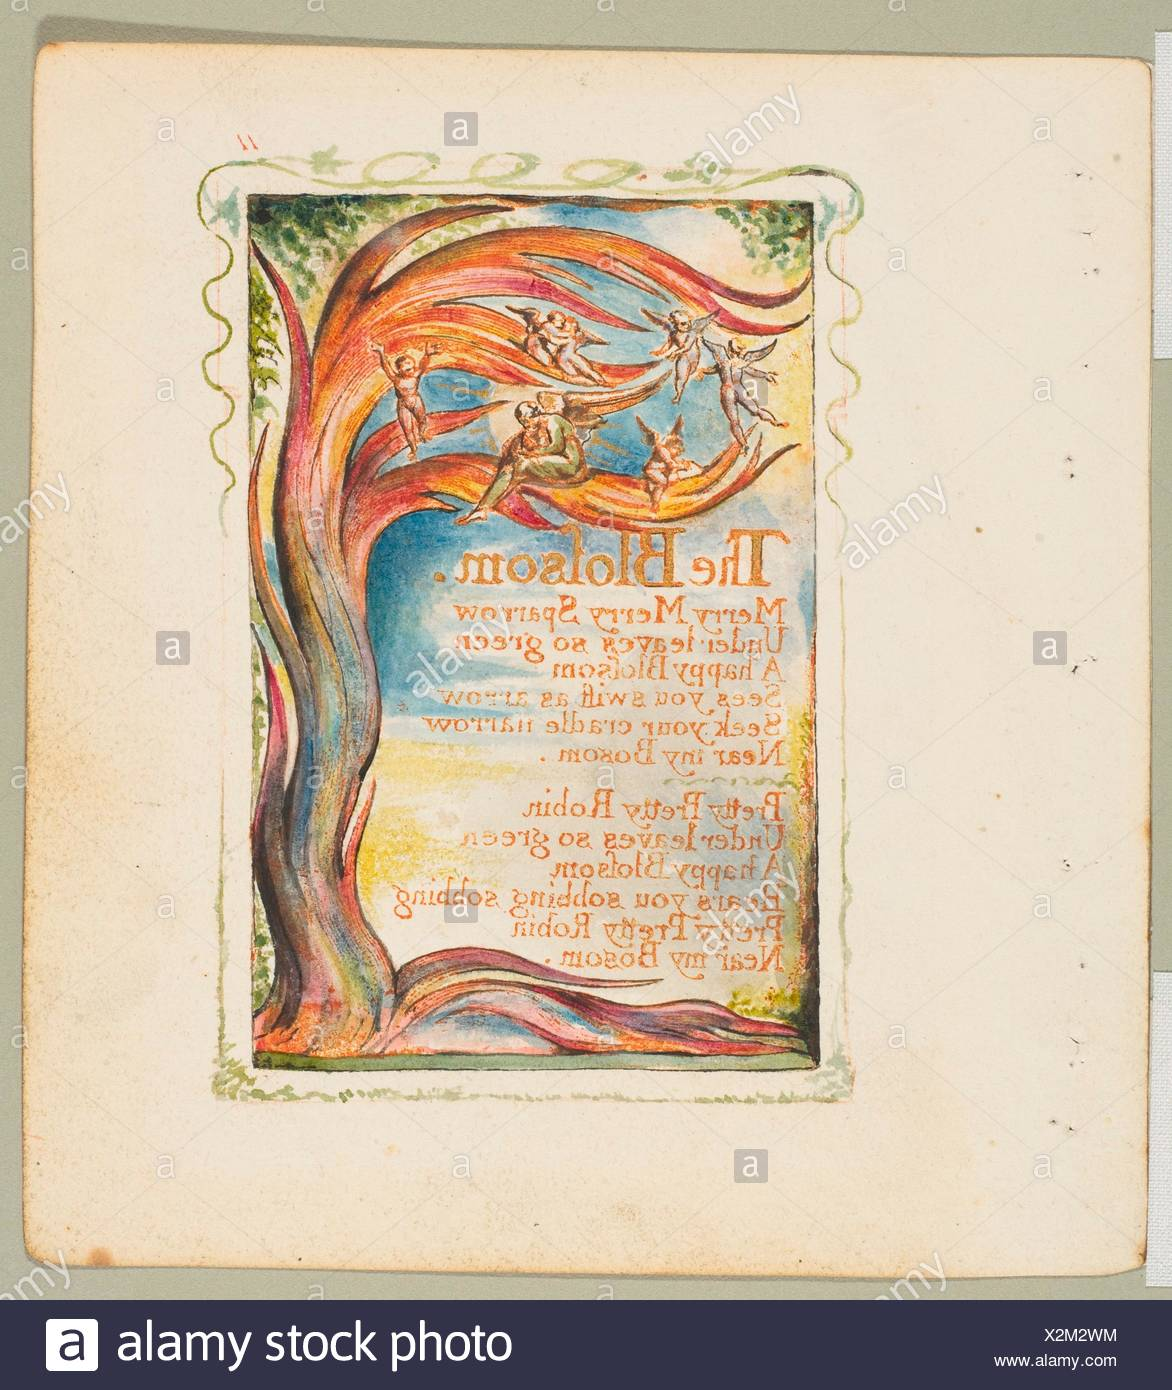 Songs of Innocence and of Experience: The Blossom: Merry Merry ...